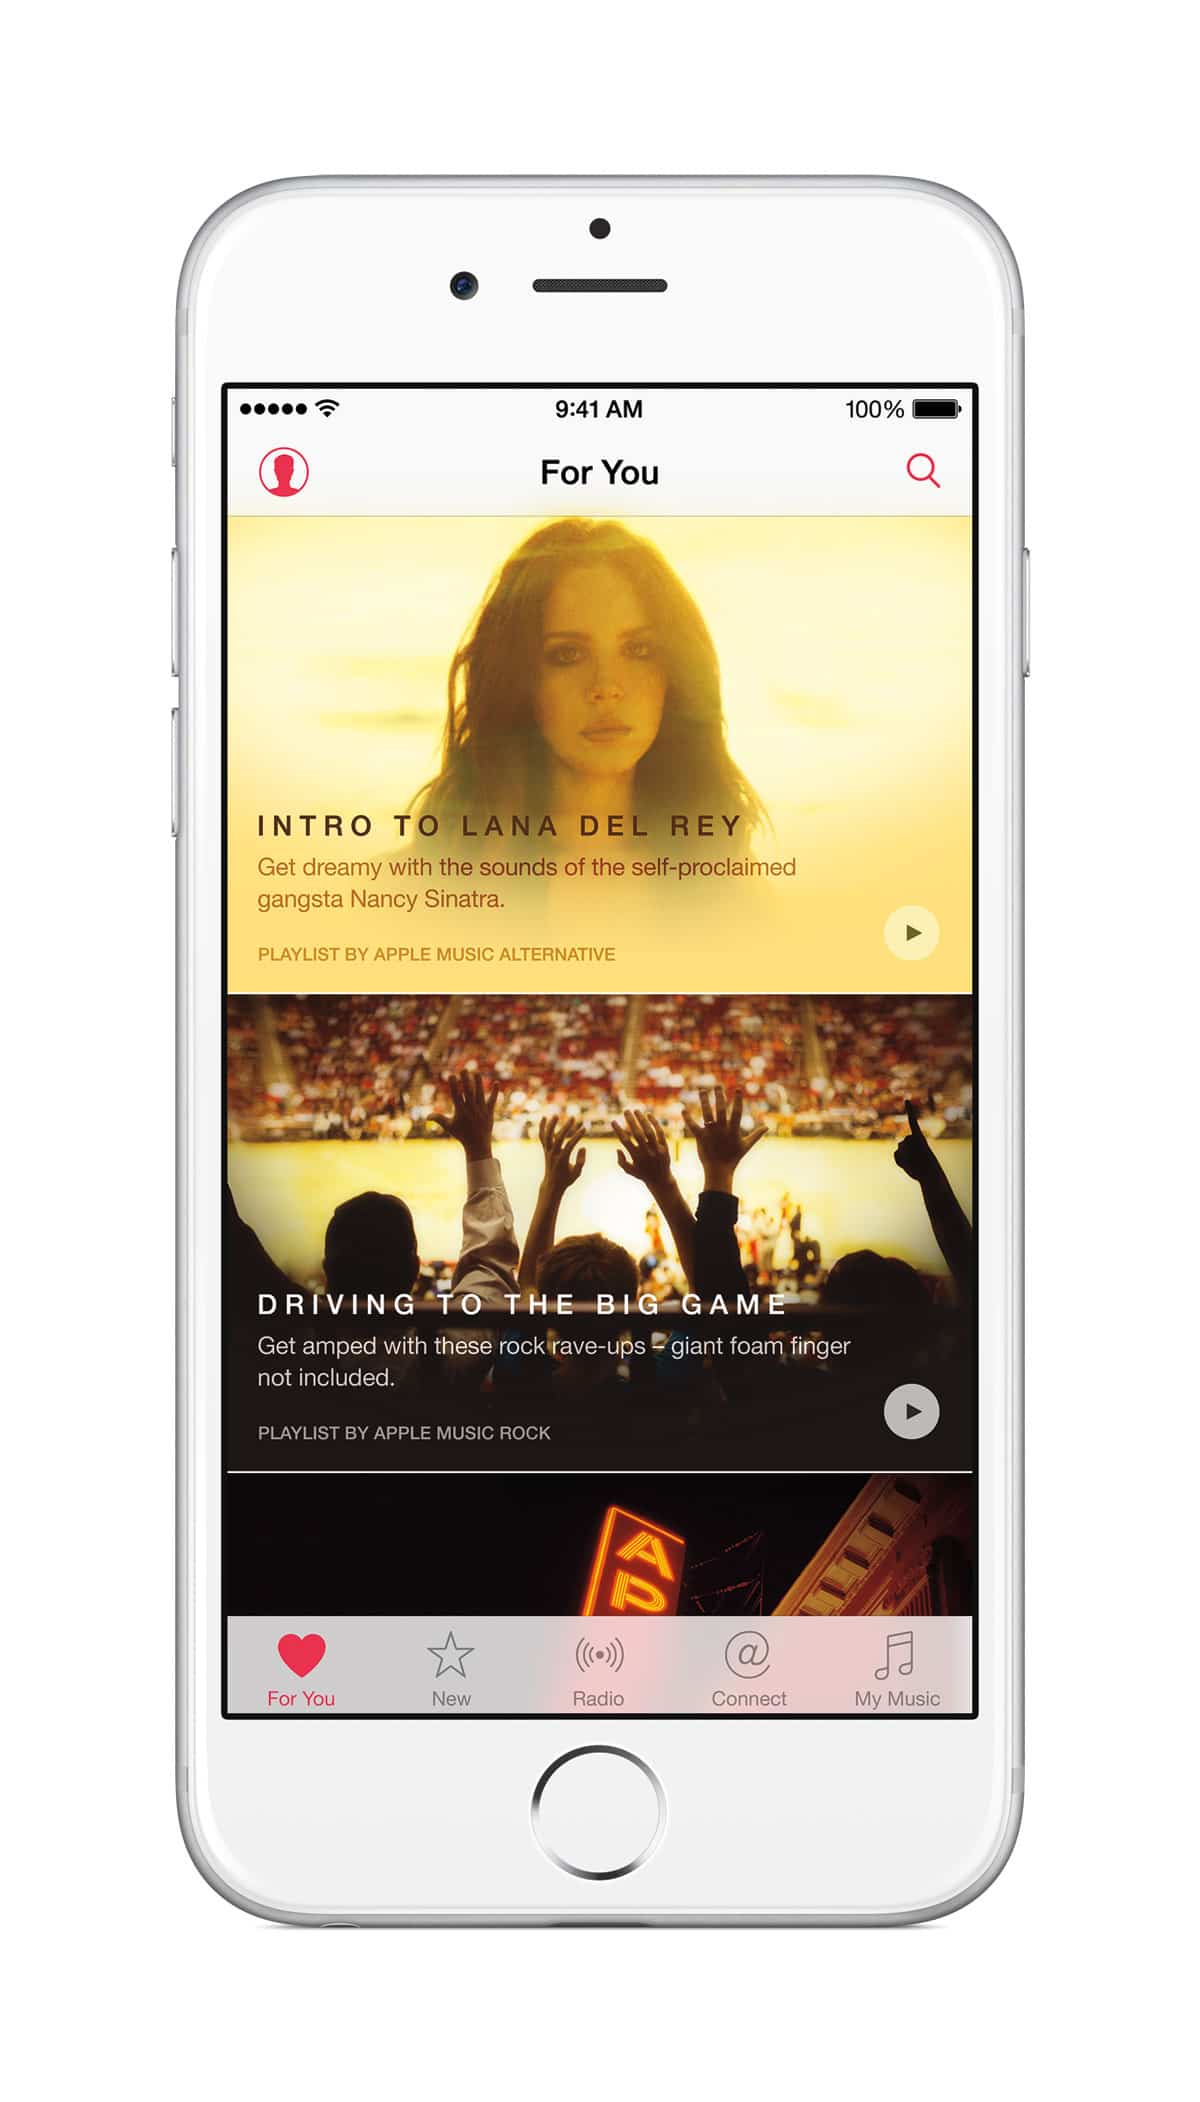 Reproducción de vídeo musicales de Apple Music en iPhone 6